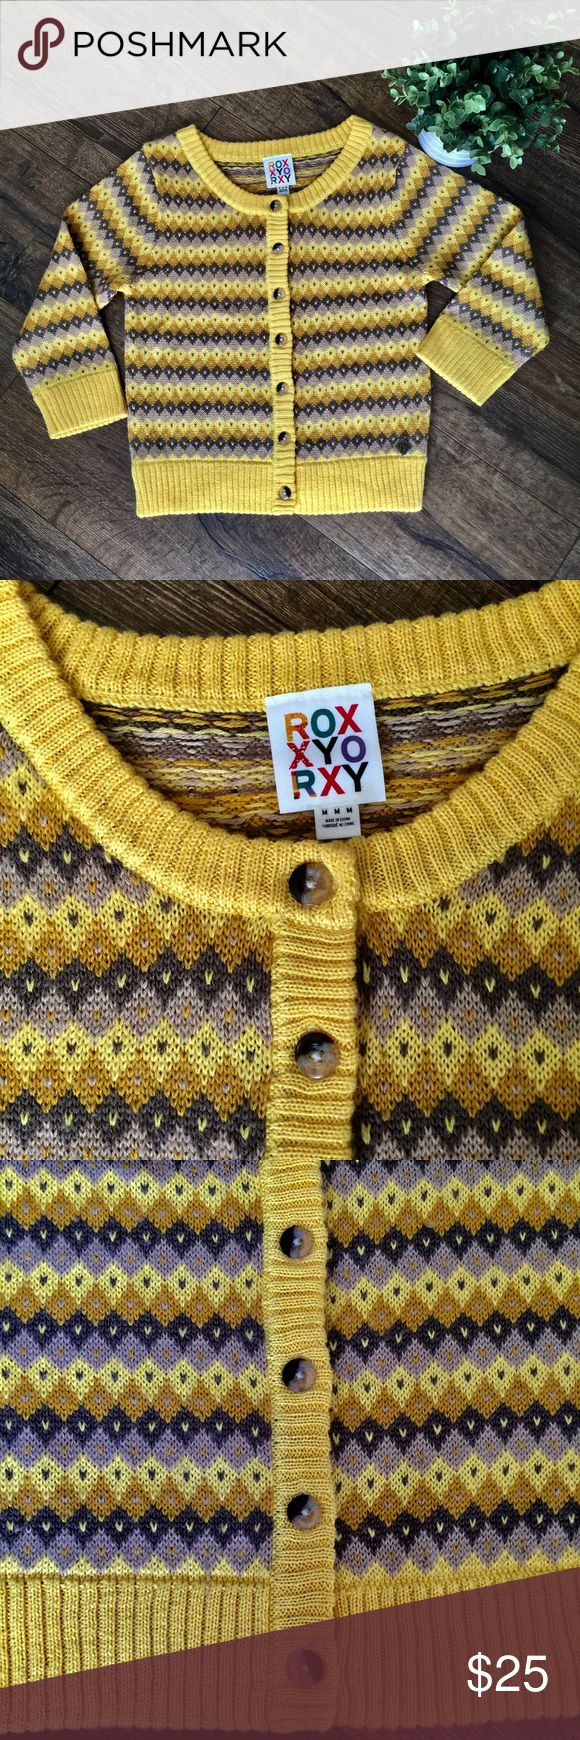 """Colorful Roxy cardigan sweater with 3/4 sleeves Roxy cardigan style sweater with 3/4 sleeves. Beautiful colors and pattern. Perfect for fall with jeans and brown boots.  70% acrylic and 30% wool. Measurements: armpit to armpit ~16.75"""", top of shoulder to bottom of sweater ~ 19"""", length of sleeve ~17.25"""". Roxy Sweaters Cardigans"""